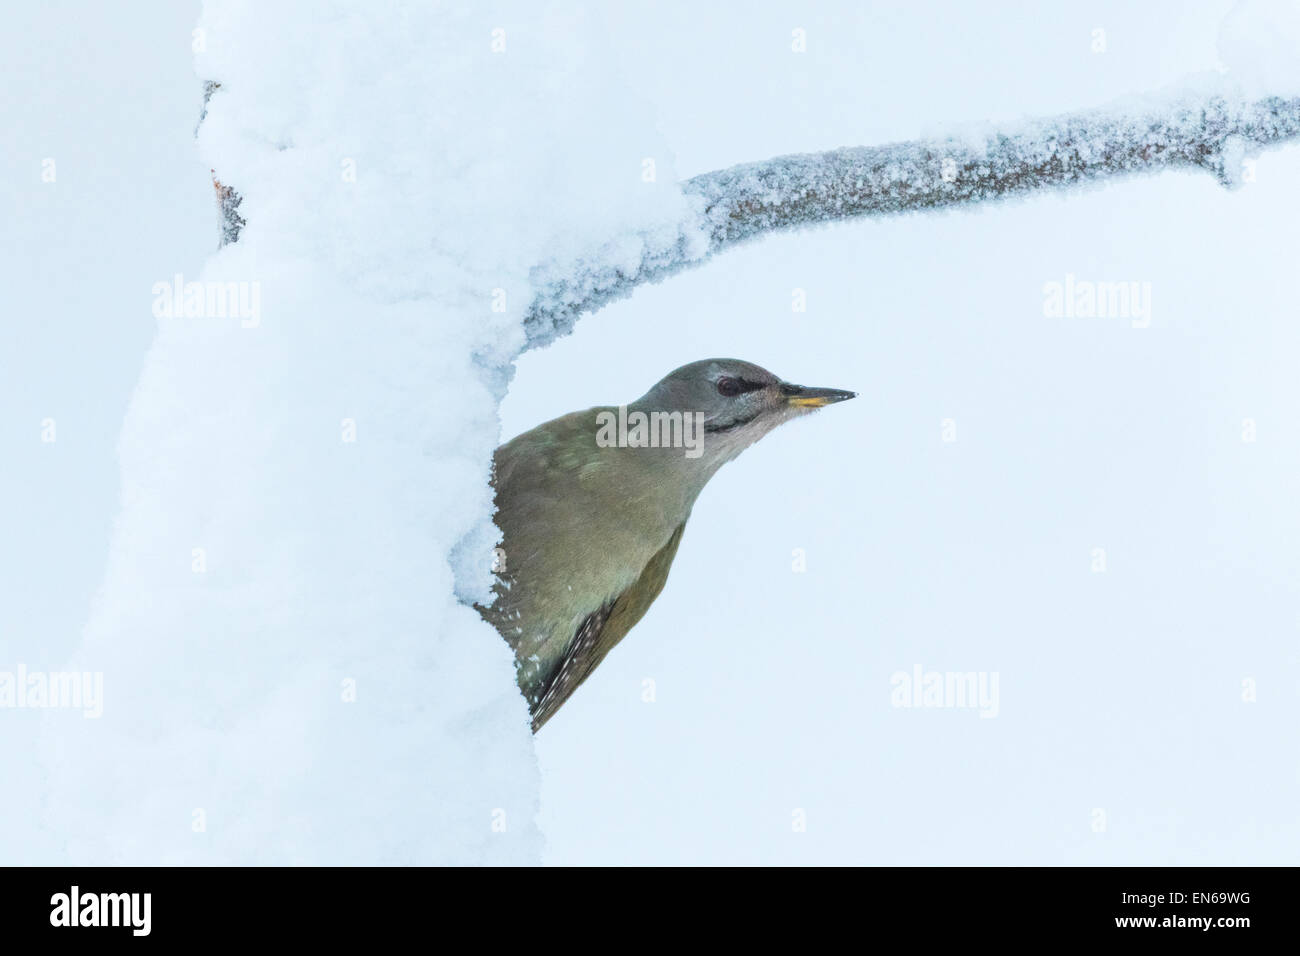 Grey-headed woodpecker, Picus canus, sitting on old tree with snow, Gälivare sweden - Stock Image